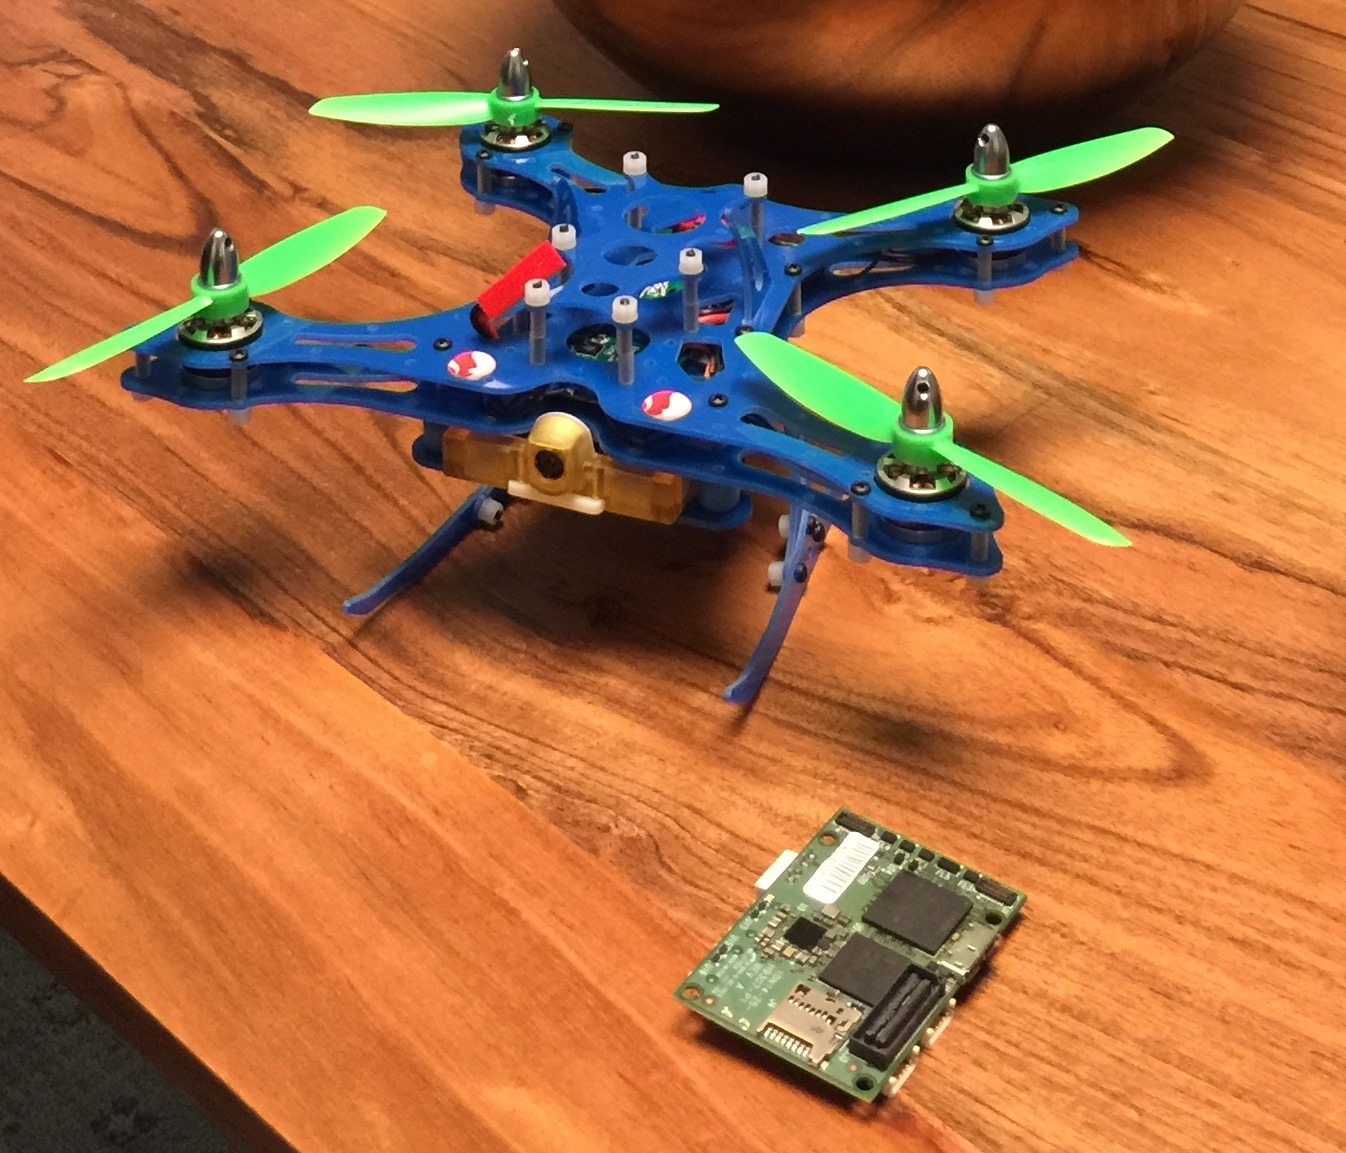 The Qualcomm Snapdragon Flight reference design and a sample drone.